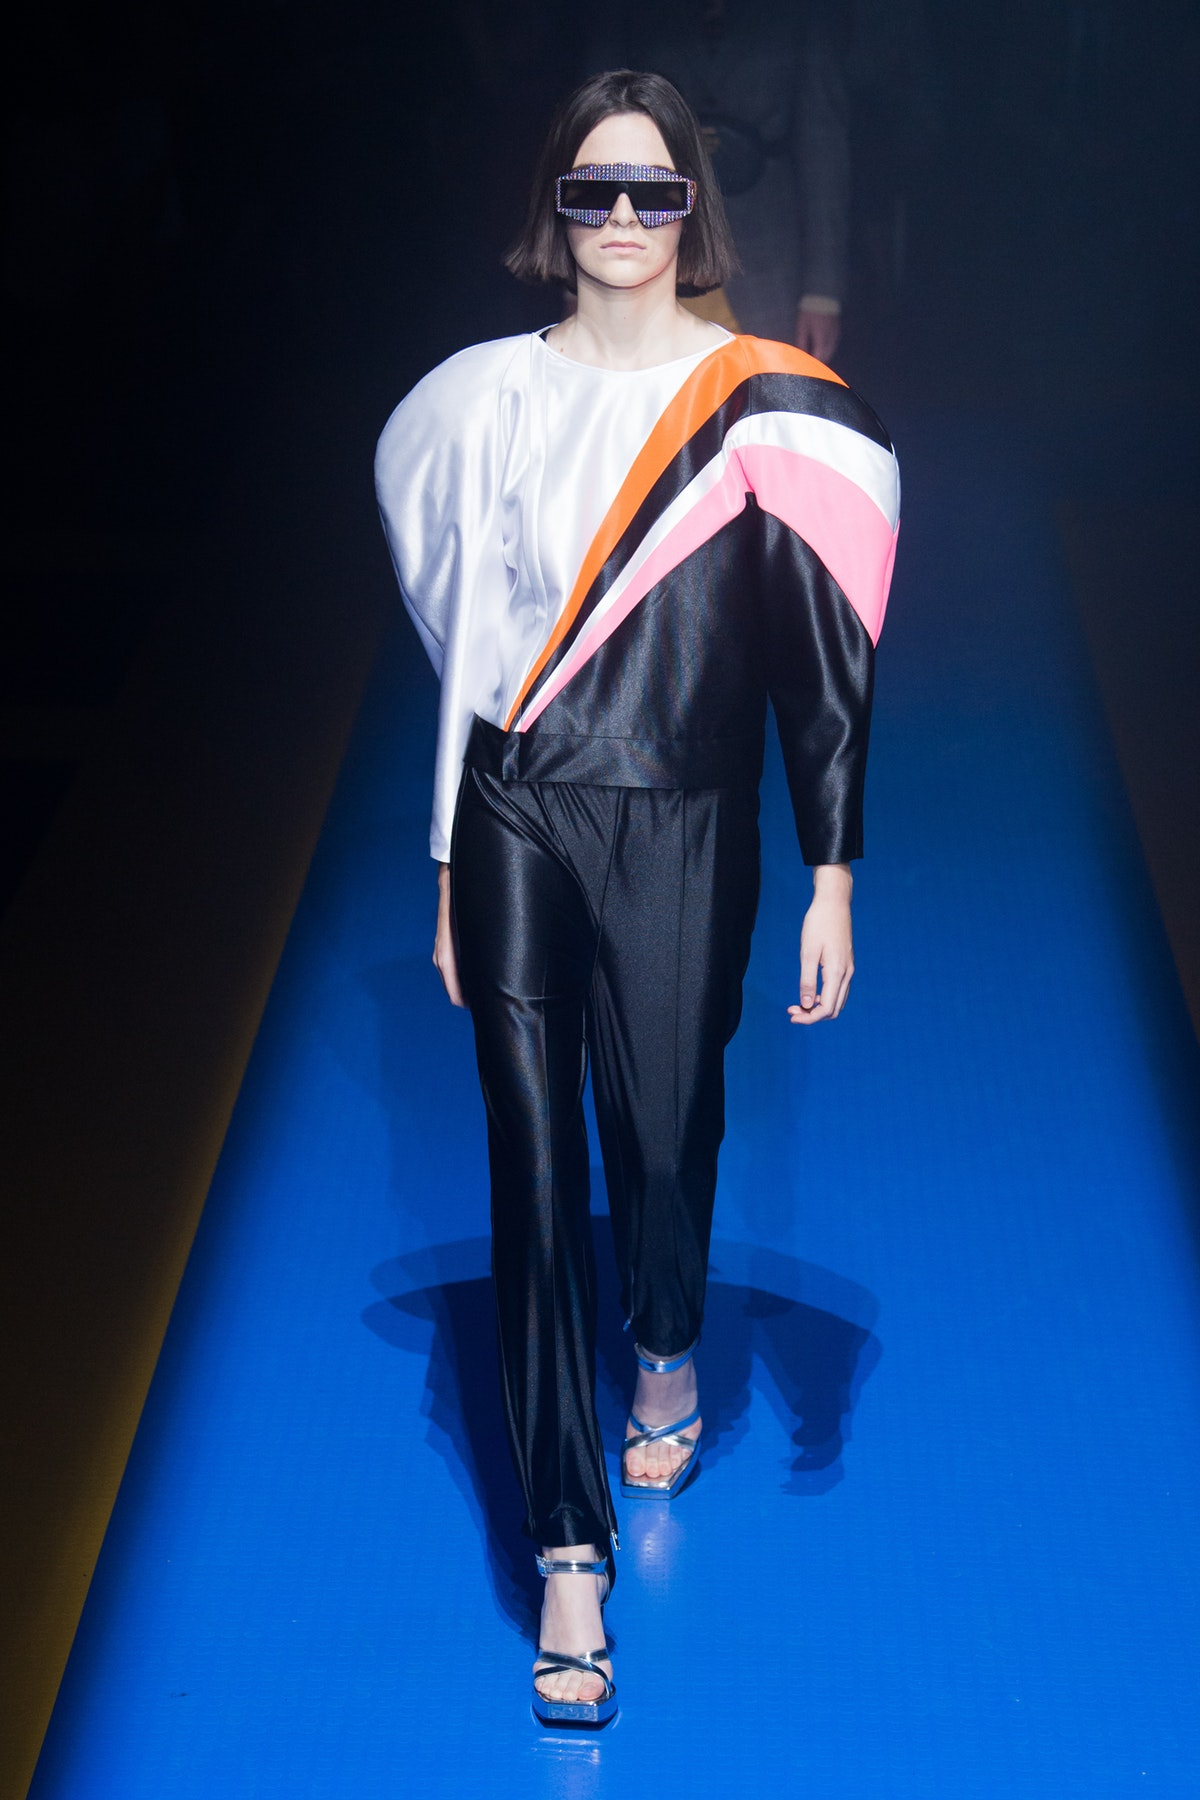 gucci_look_3_ready_to_wear_spring_2018.jpeg